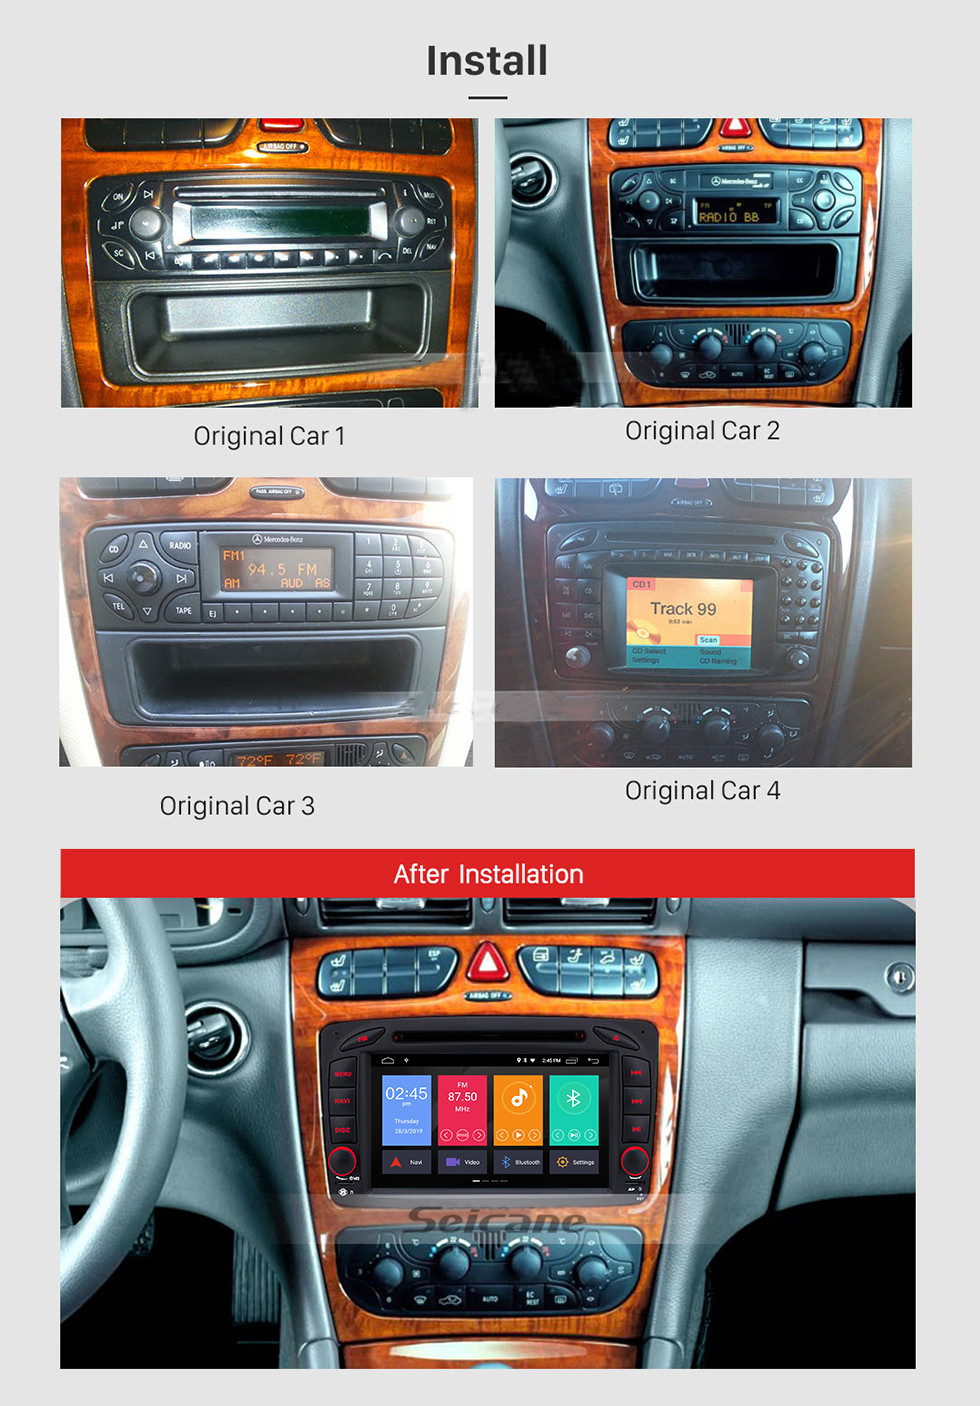 Seicane Android 9.0 7 Inch Touchscreen Car DVD Player for 2004-2011 Mercedes-Benz CLK W209 Bluetooth GPS Navigayion Radio with WIFI Steering Wheel Control